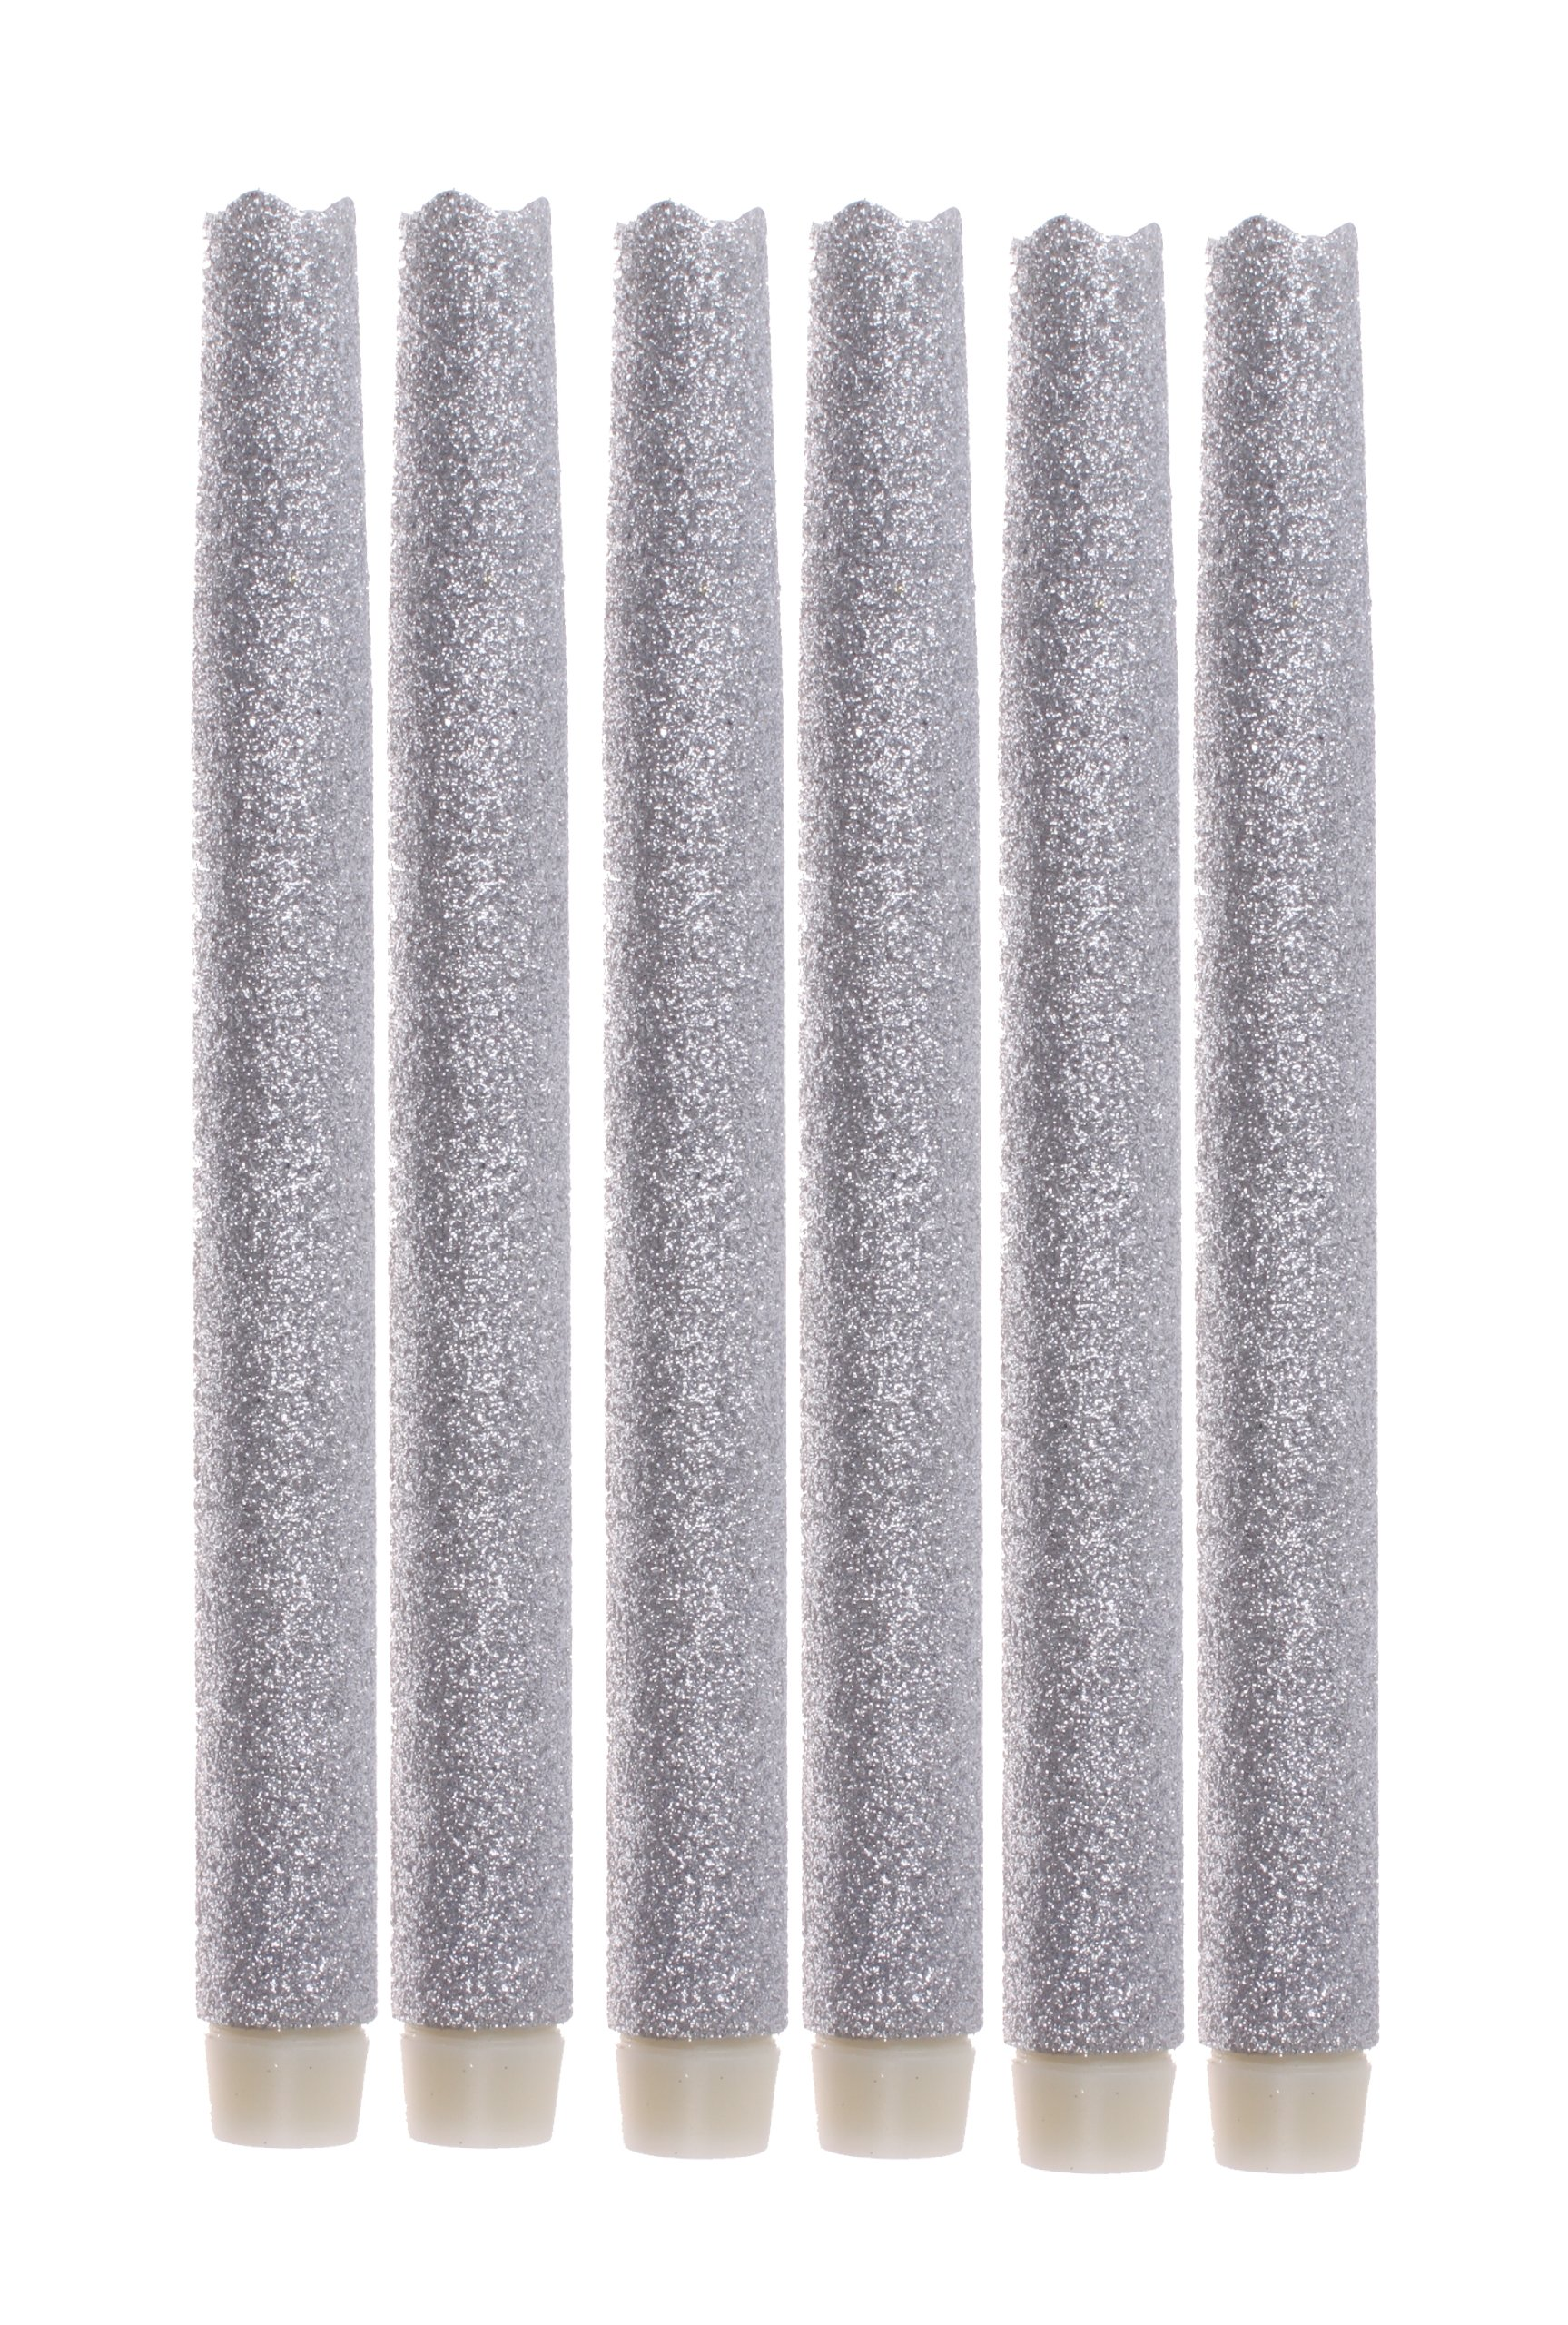 Melted Led Taper Candles with Timer,Battery Operated,with Silvery Glitter